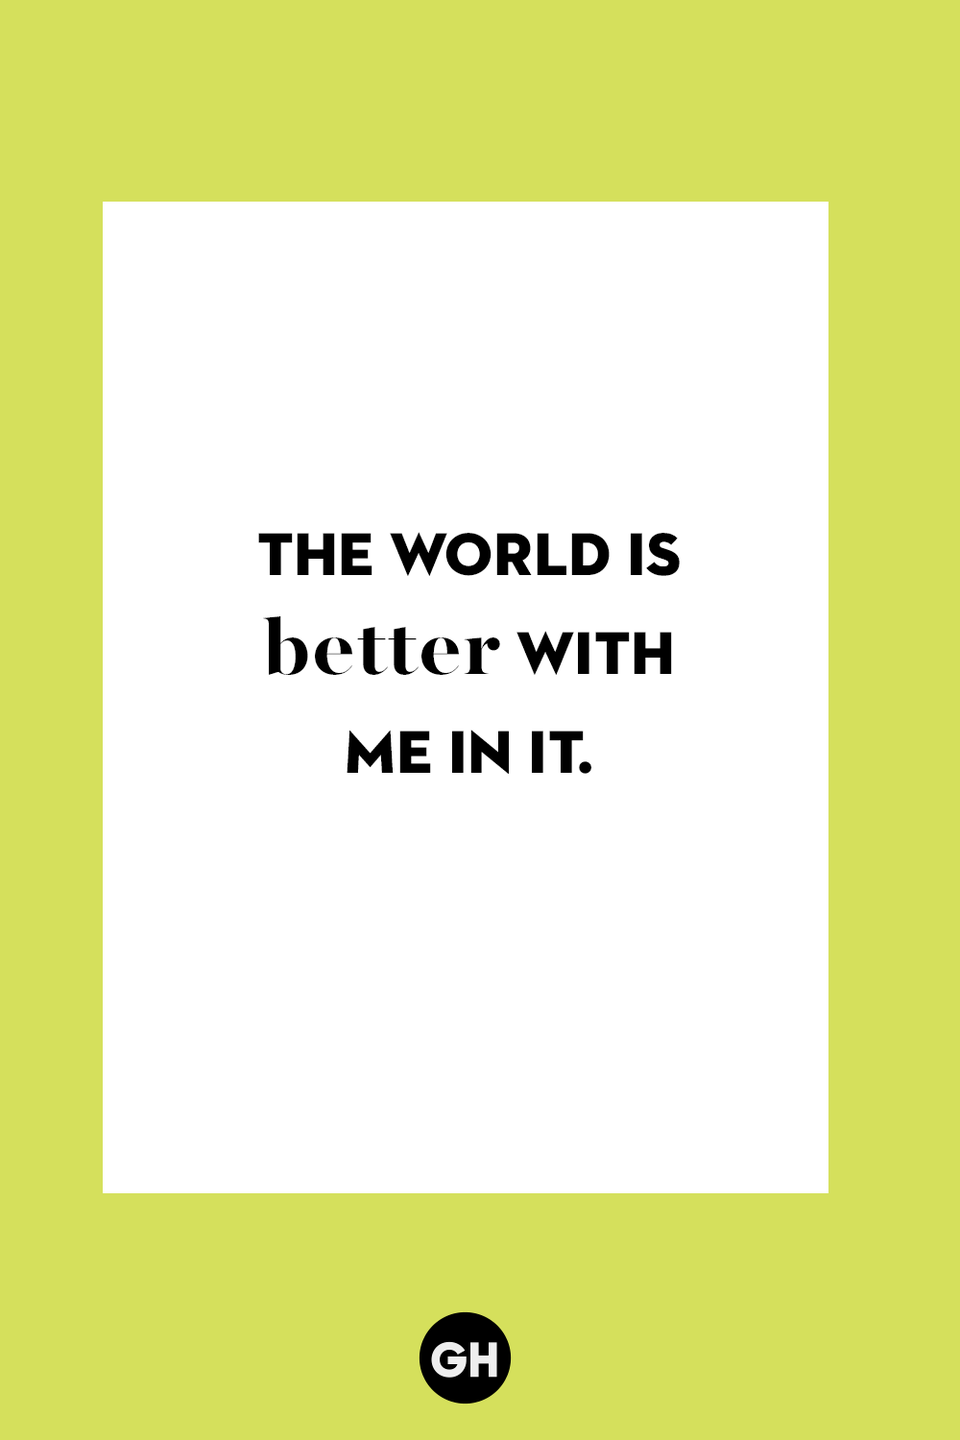 <p>The world is better with me in it. </p>